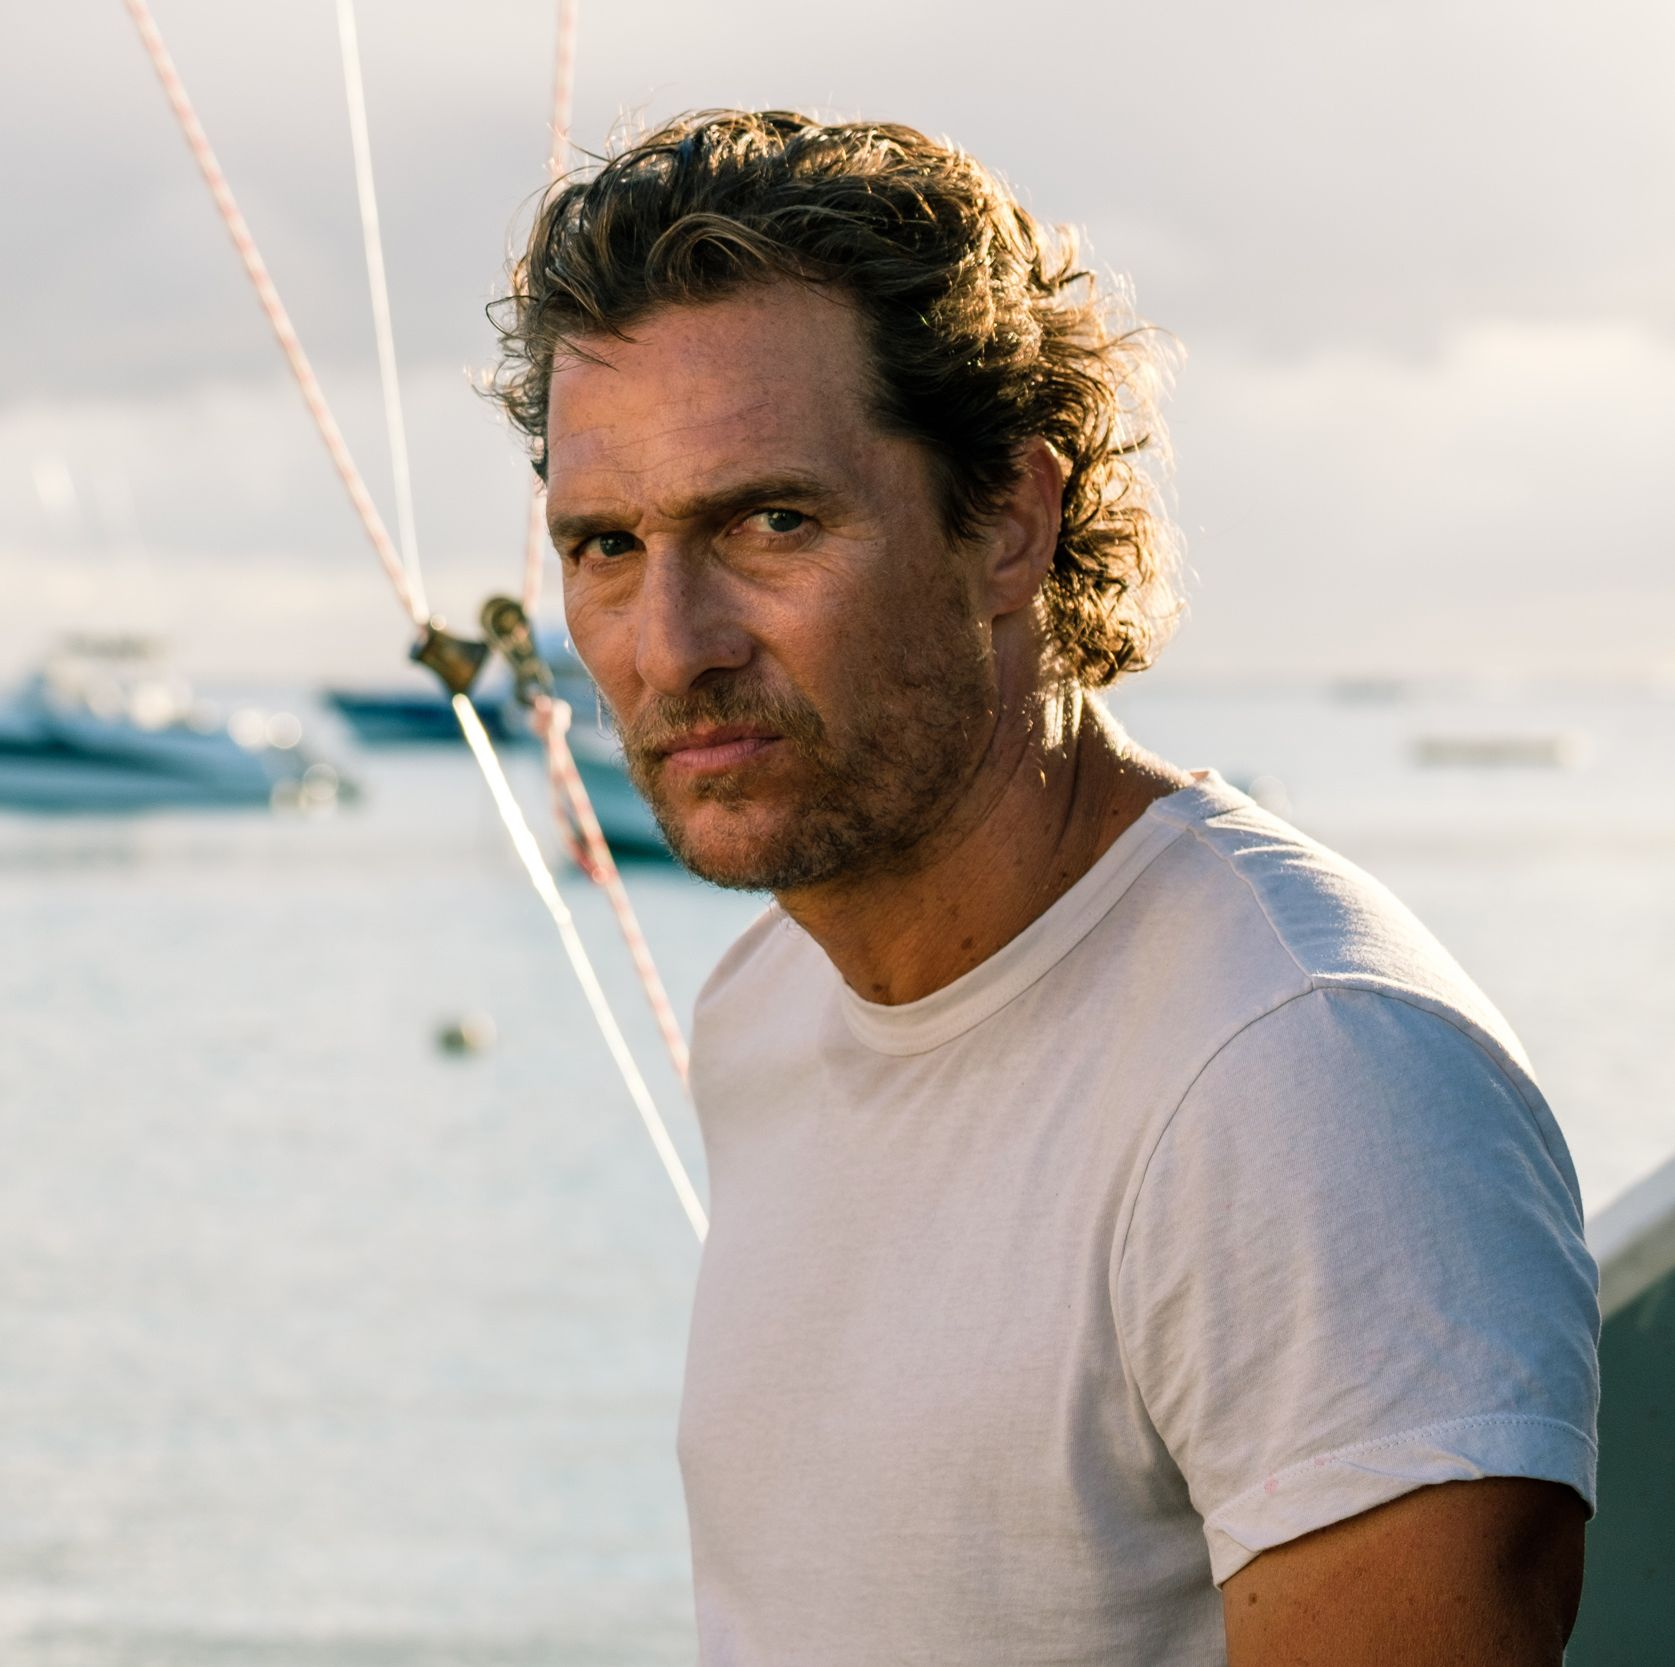 Matthew McConaughey's Serenity Is So Insane That No Headline Can Begin to Do it Justice